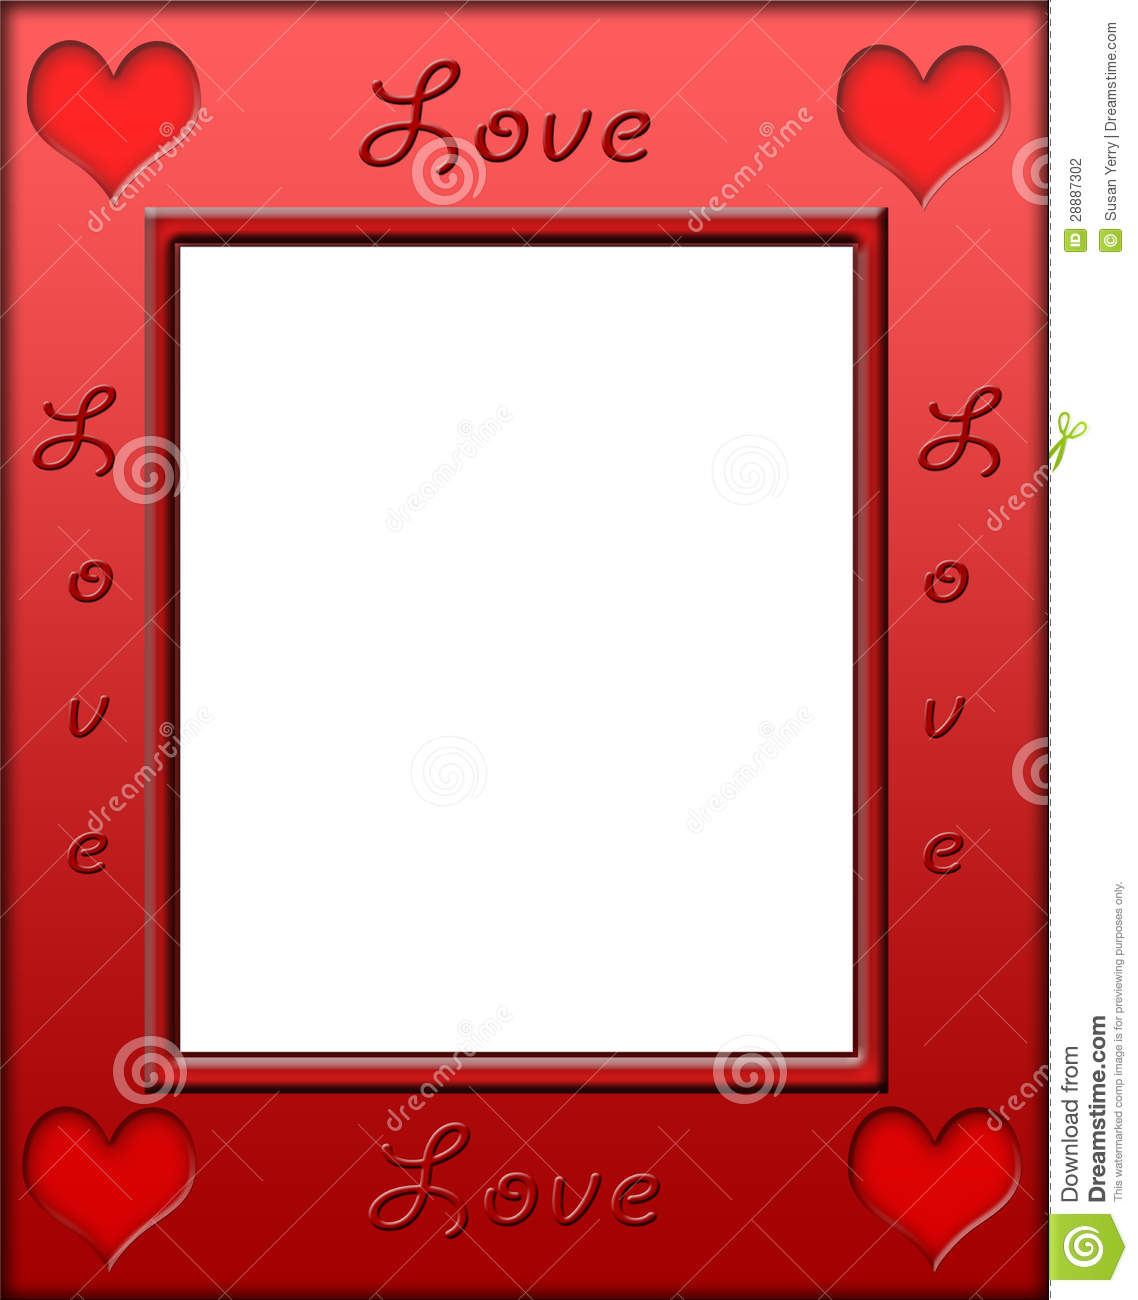 red heart love frame border